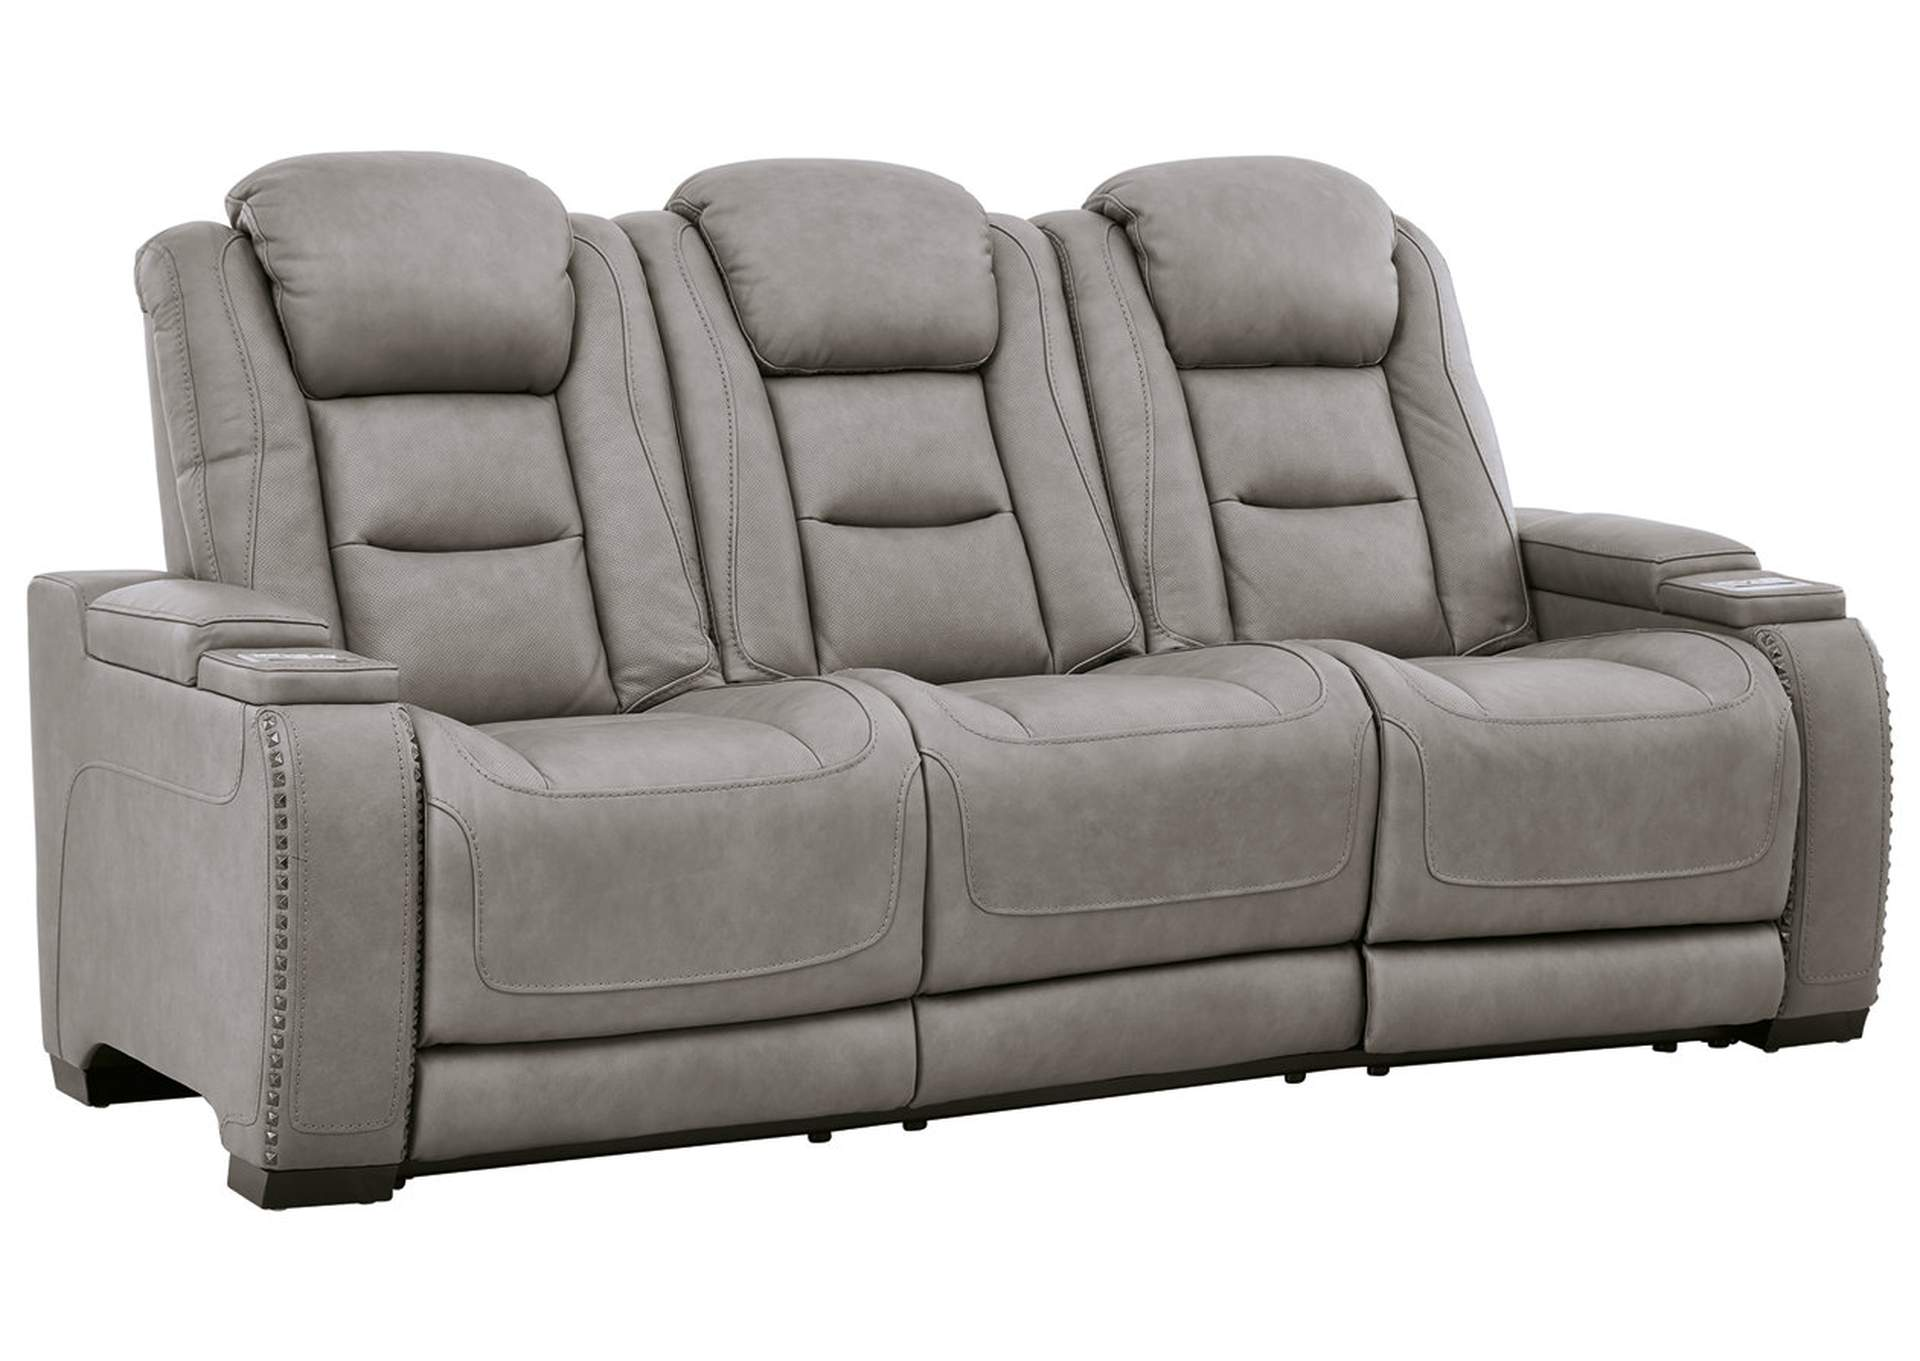 The Man Den Power Reclining Sofa Ashley Furniture Homestore Independently Owned And Operated By Best Furn Appliances I